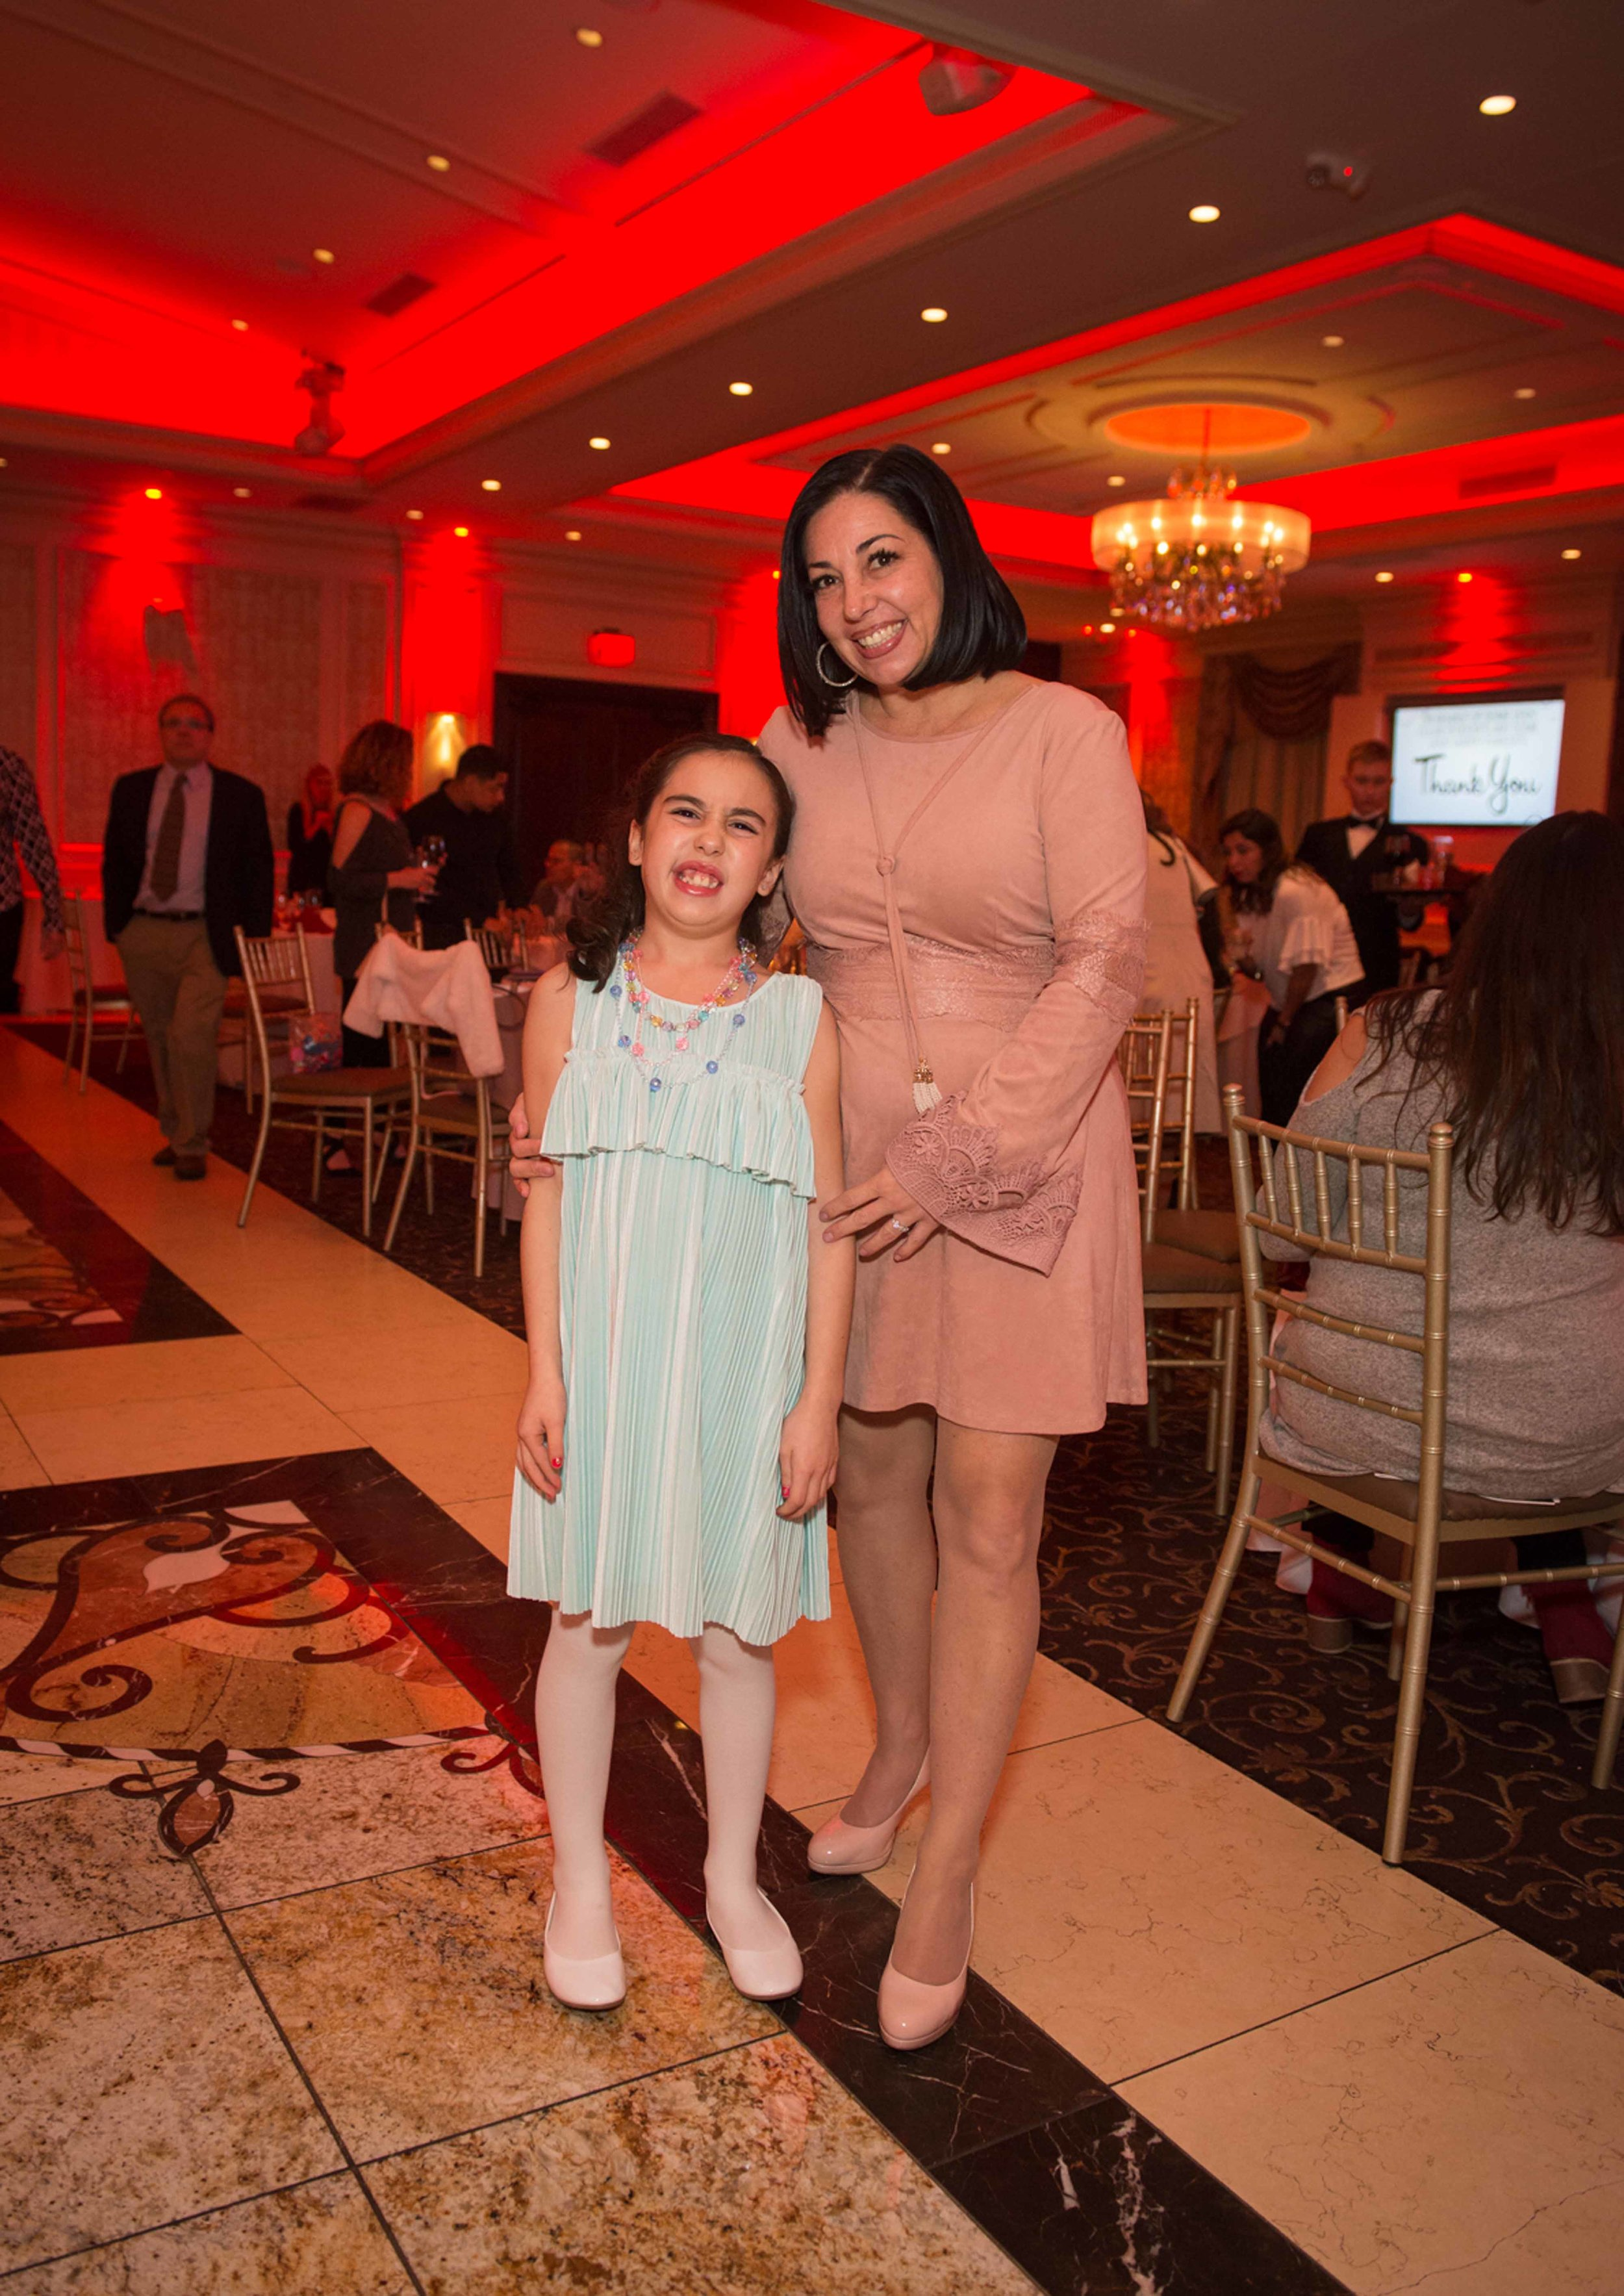 2017-11-10 The EPIC School - Party with a Purpose - Biagios on the Terrace - Paramus NJ-158.jpg